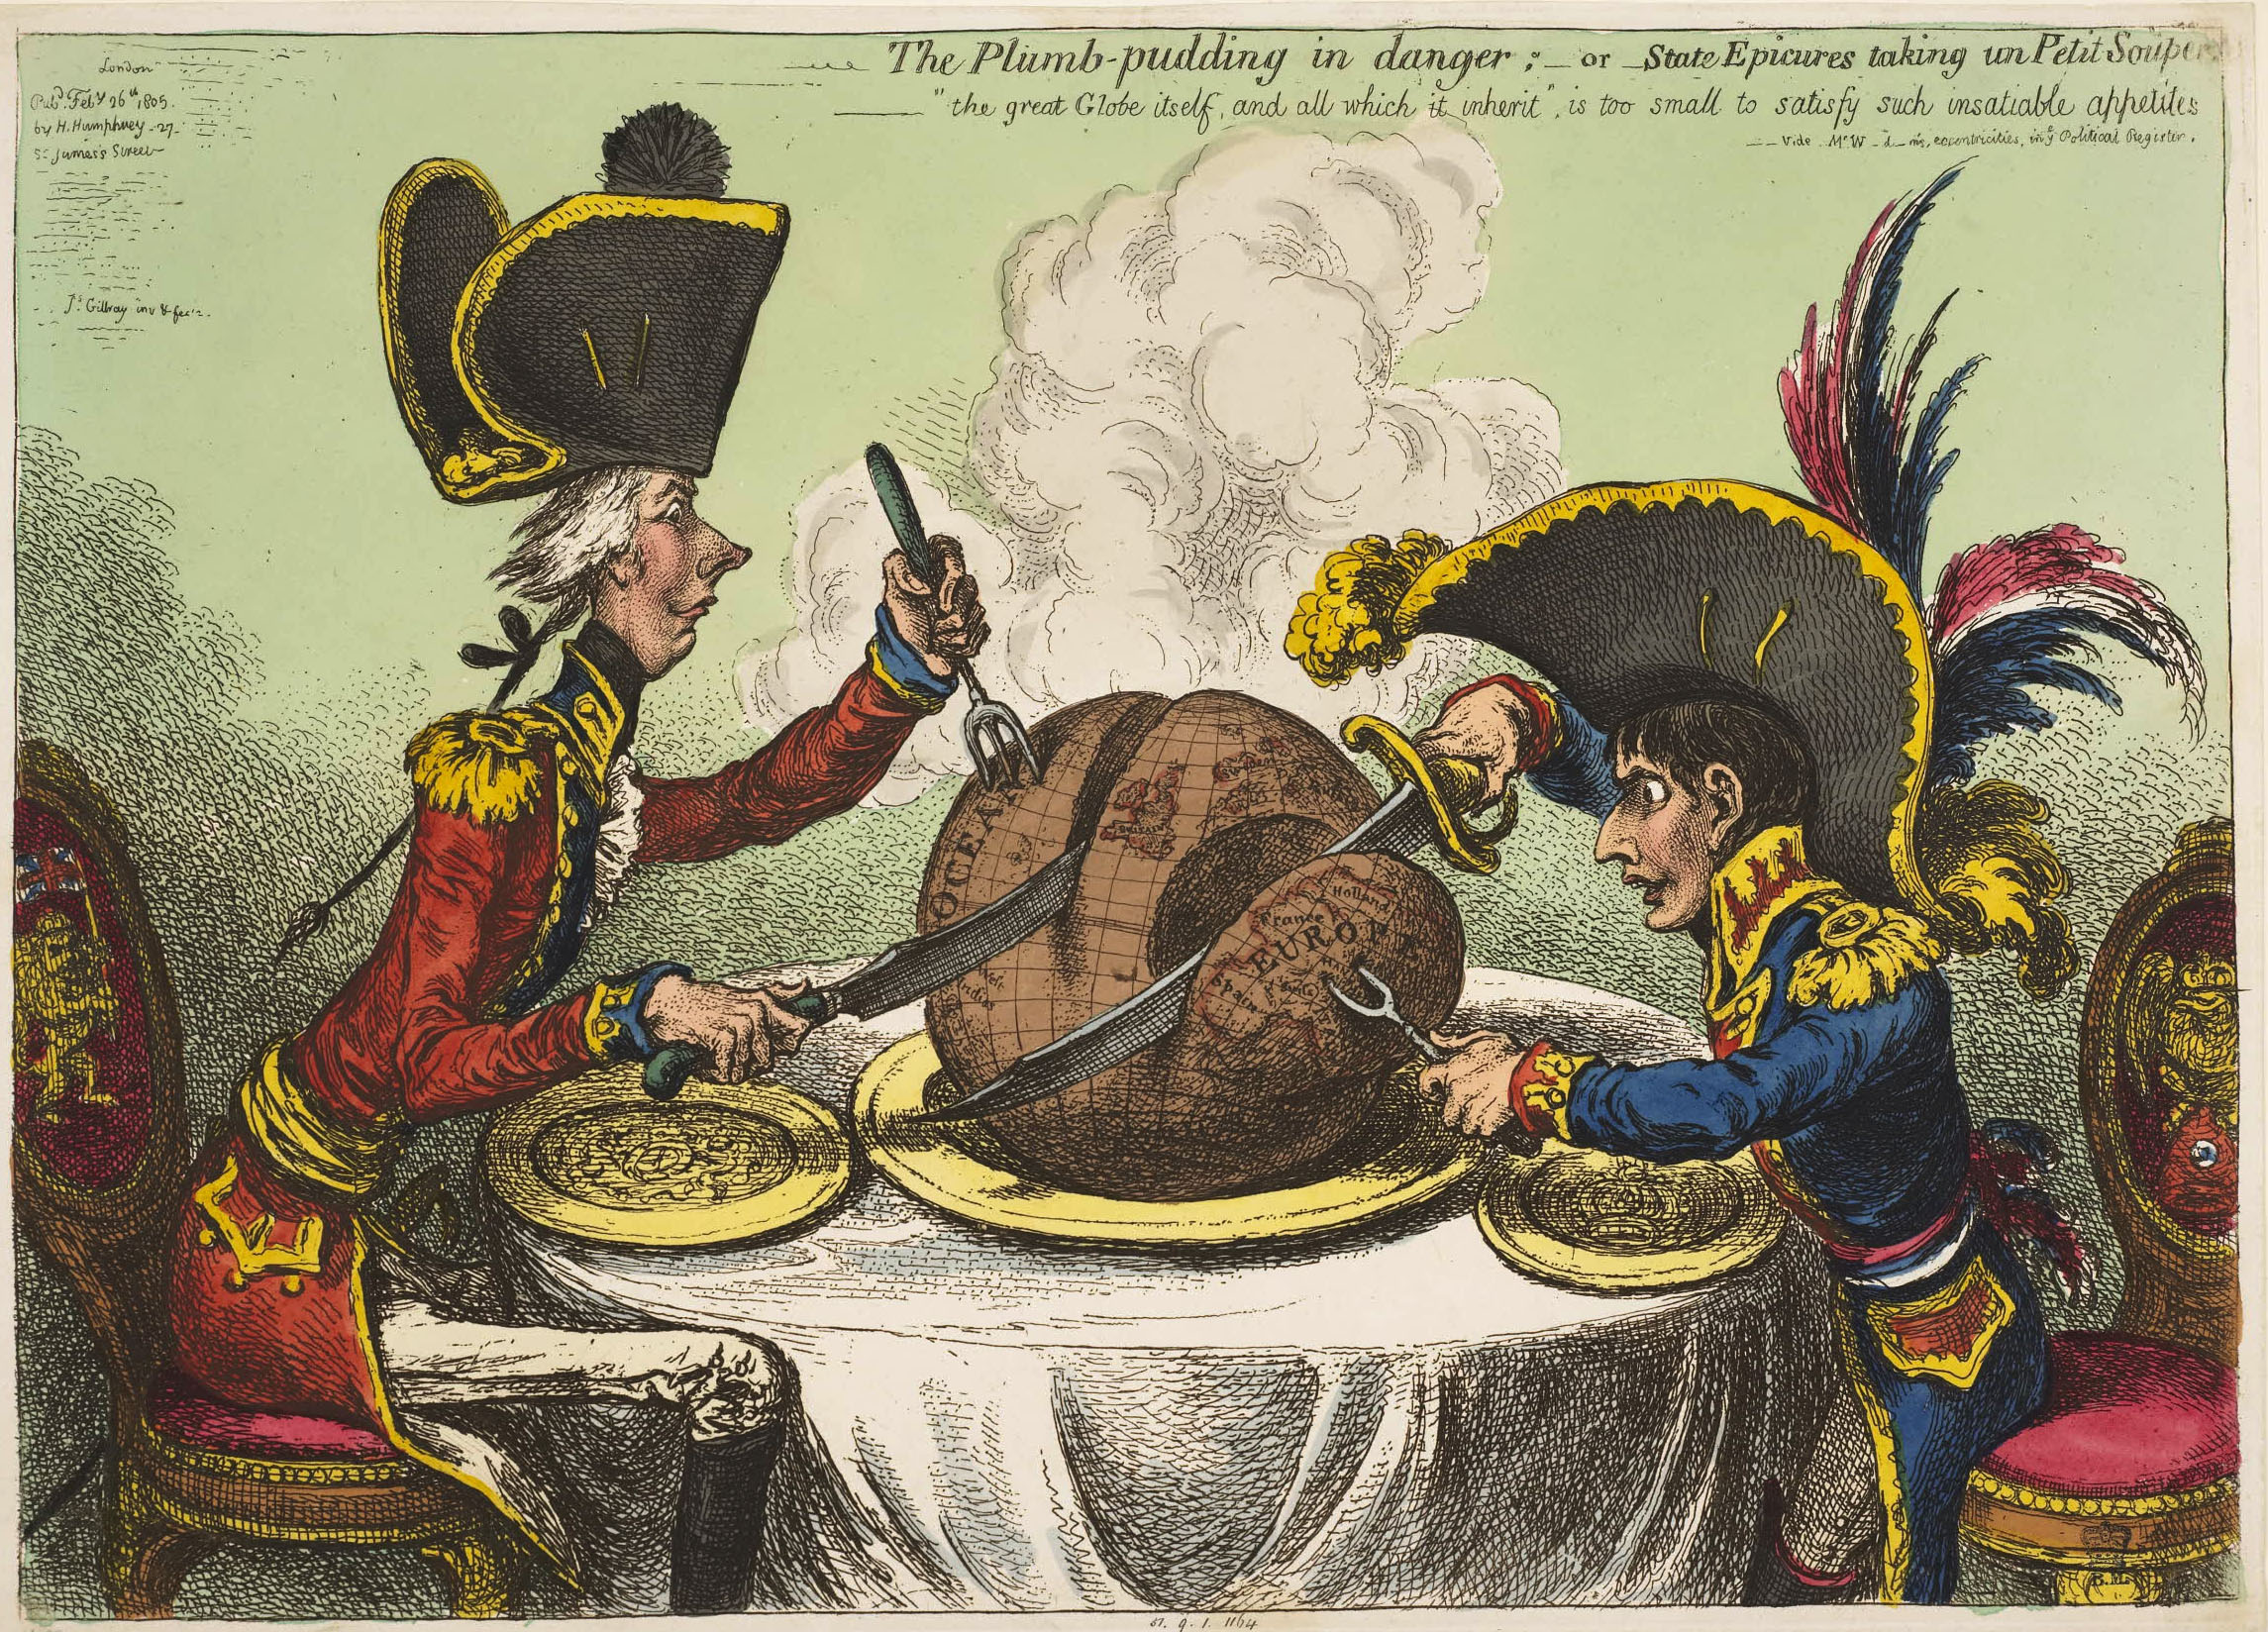 The Plumb-Pudding In Danger by James Gillray (1805). But who is carving it up in 2019?